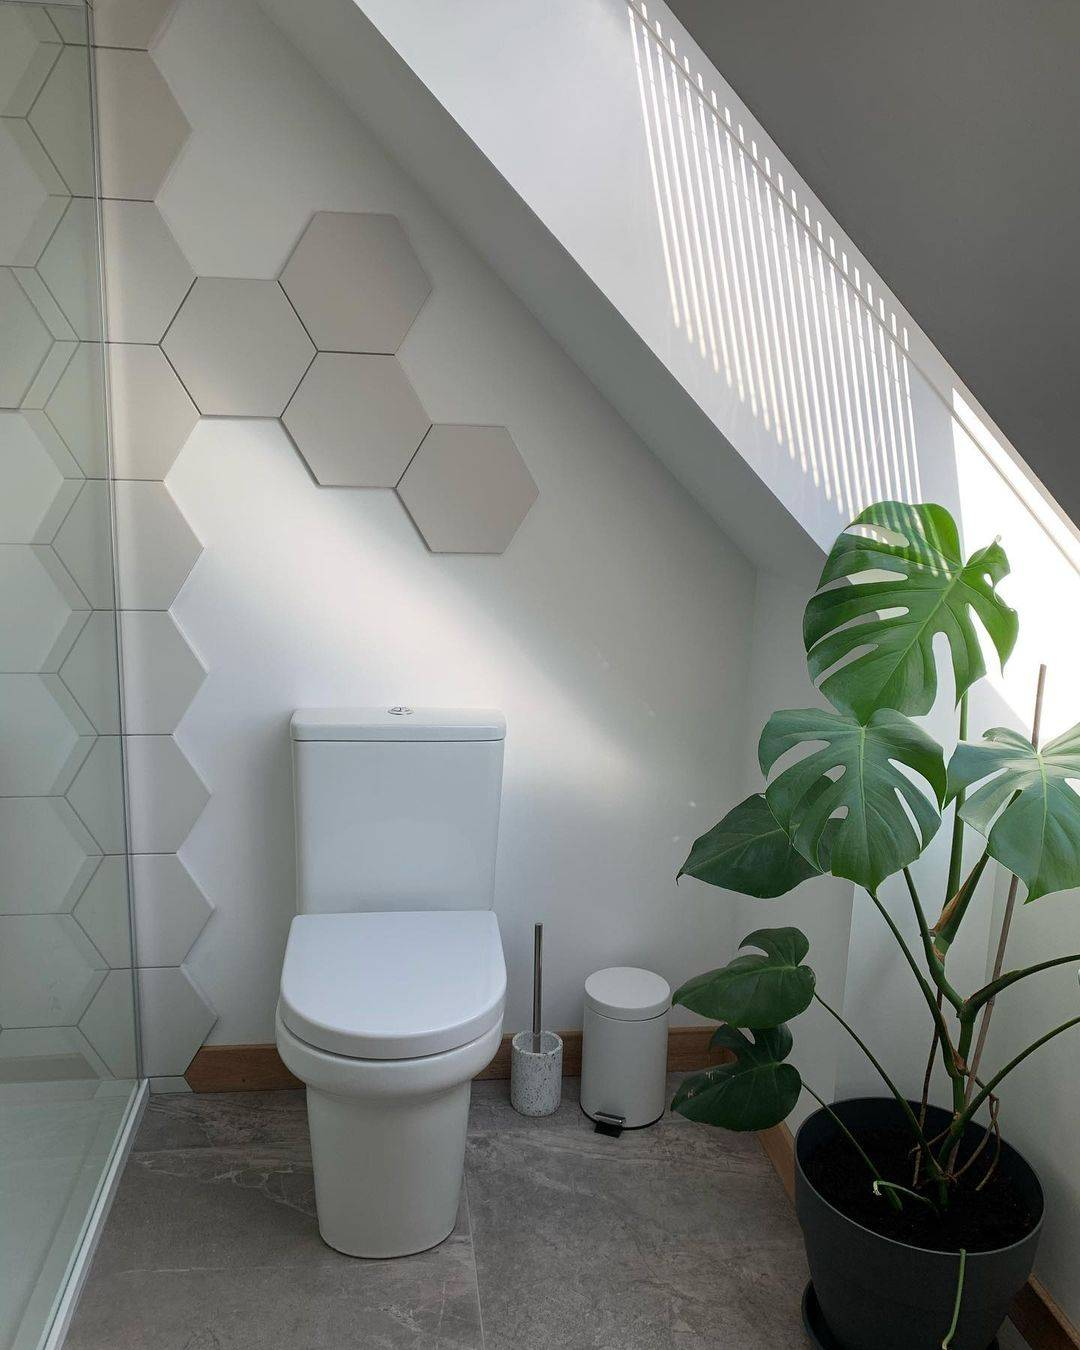 Large potted plant in bathroom